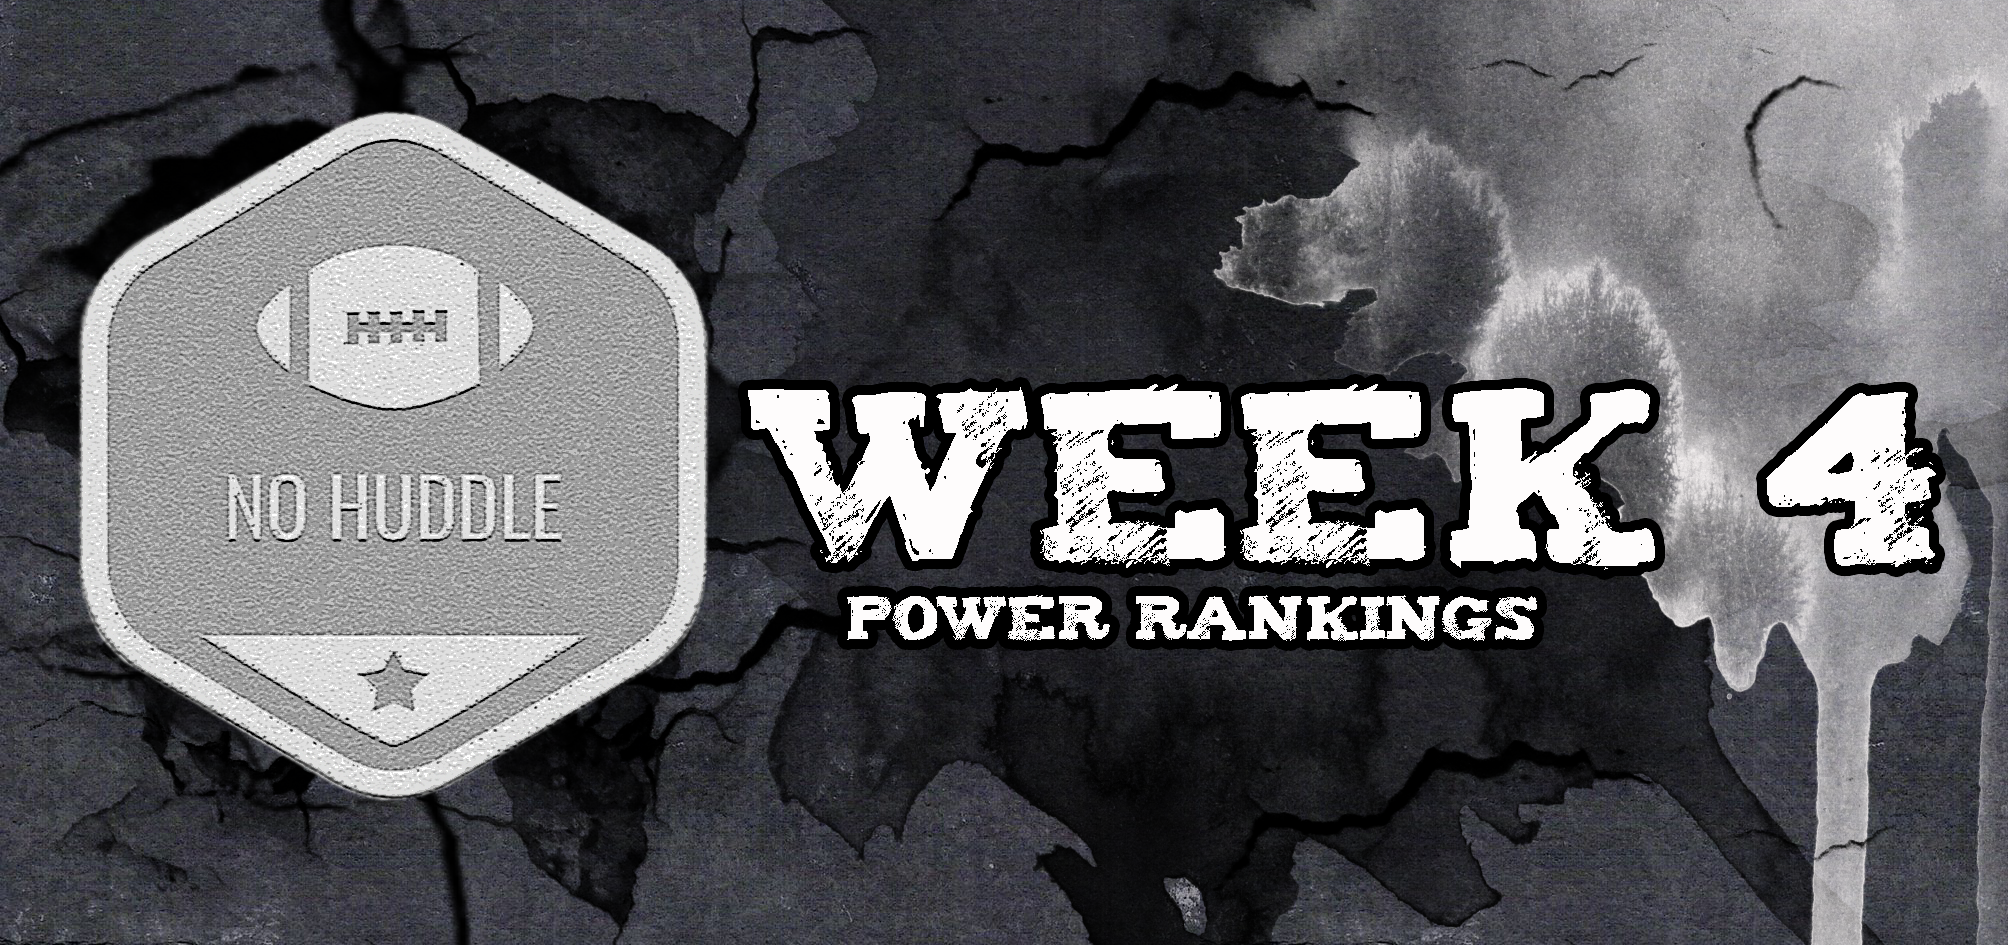 Power Rankings: Semana 4